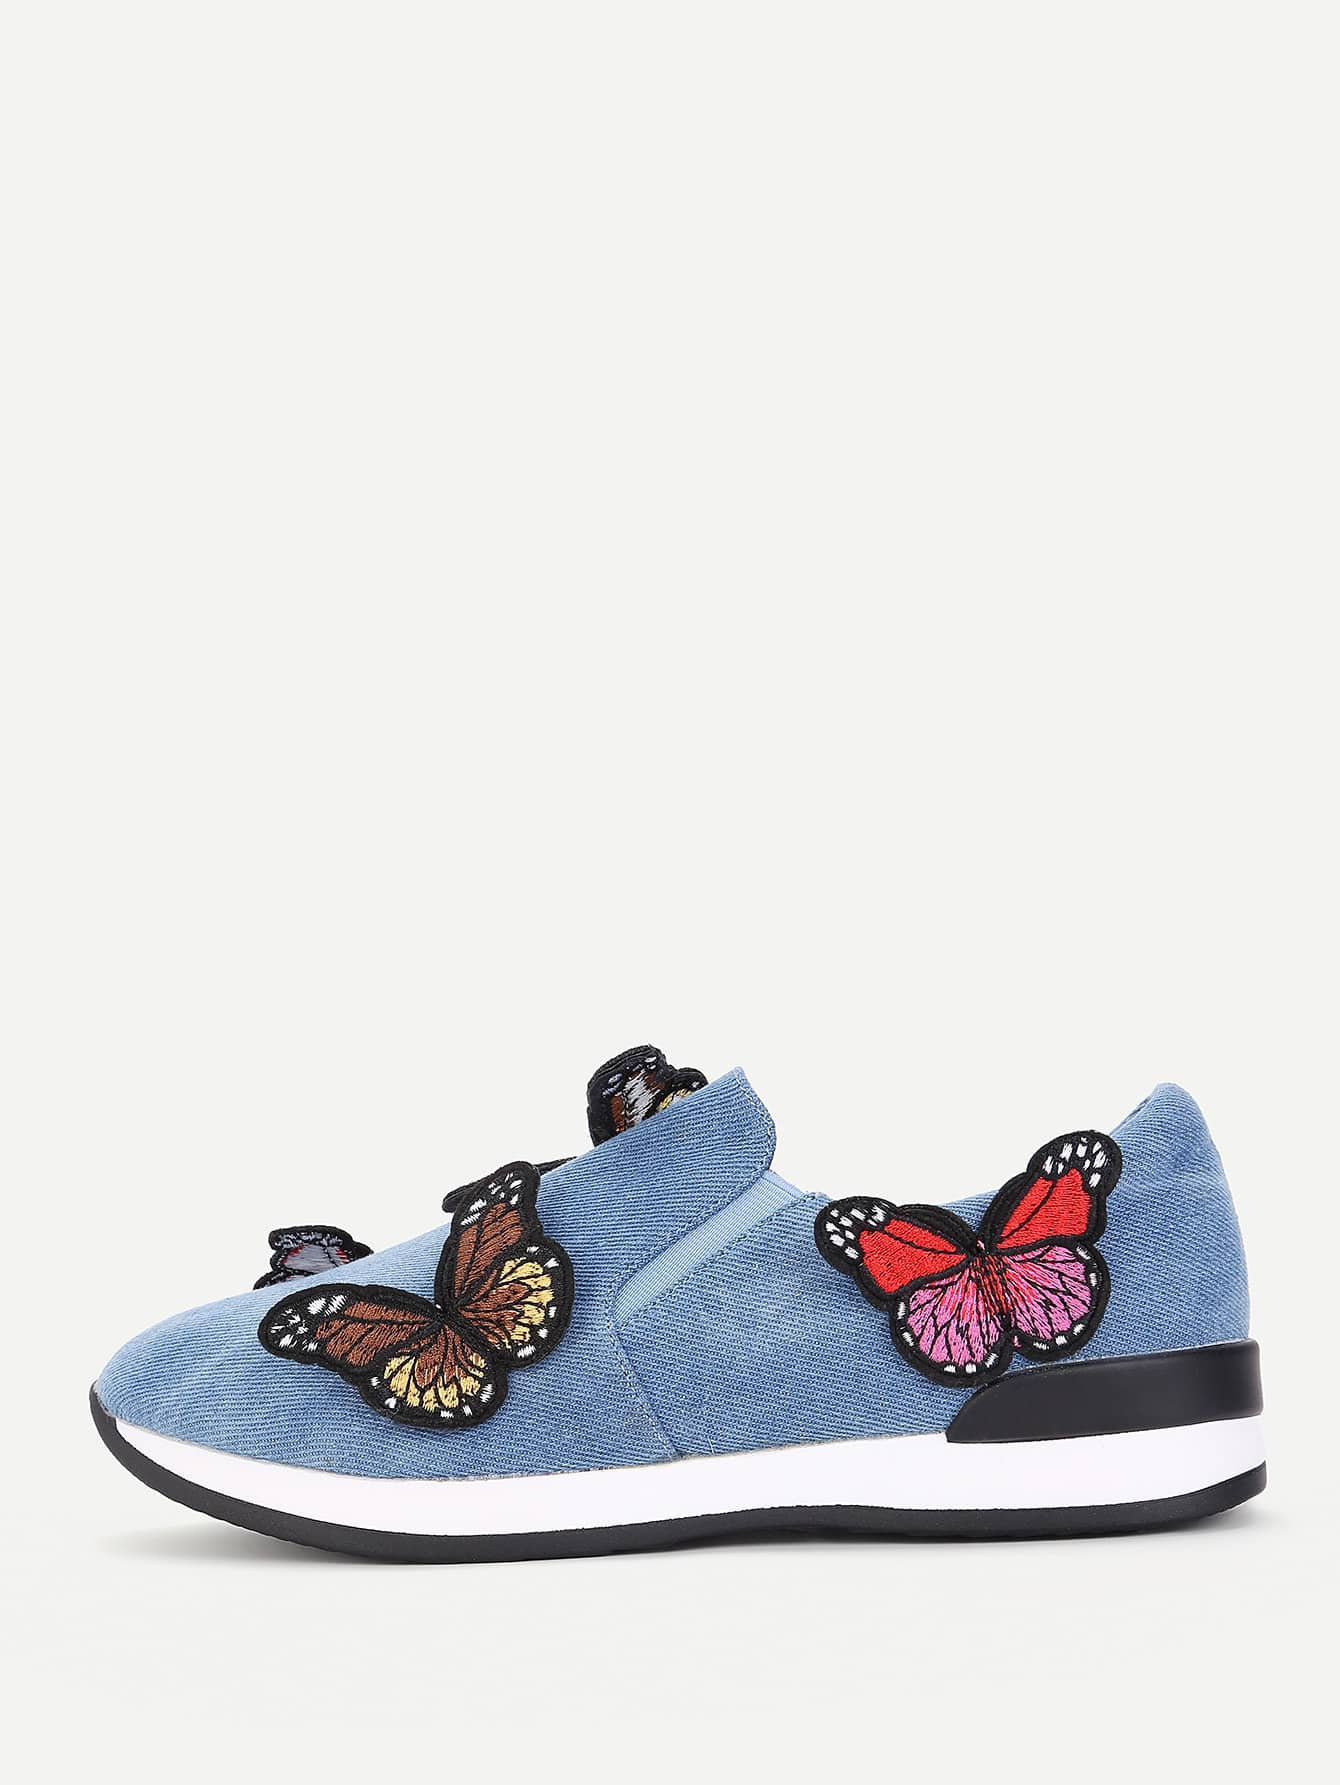 Image of Butterfly Embroidery Slip On Sneakers